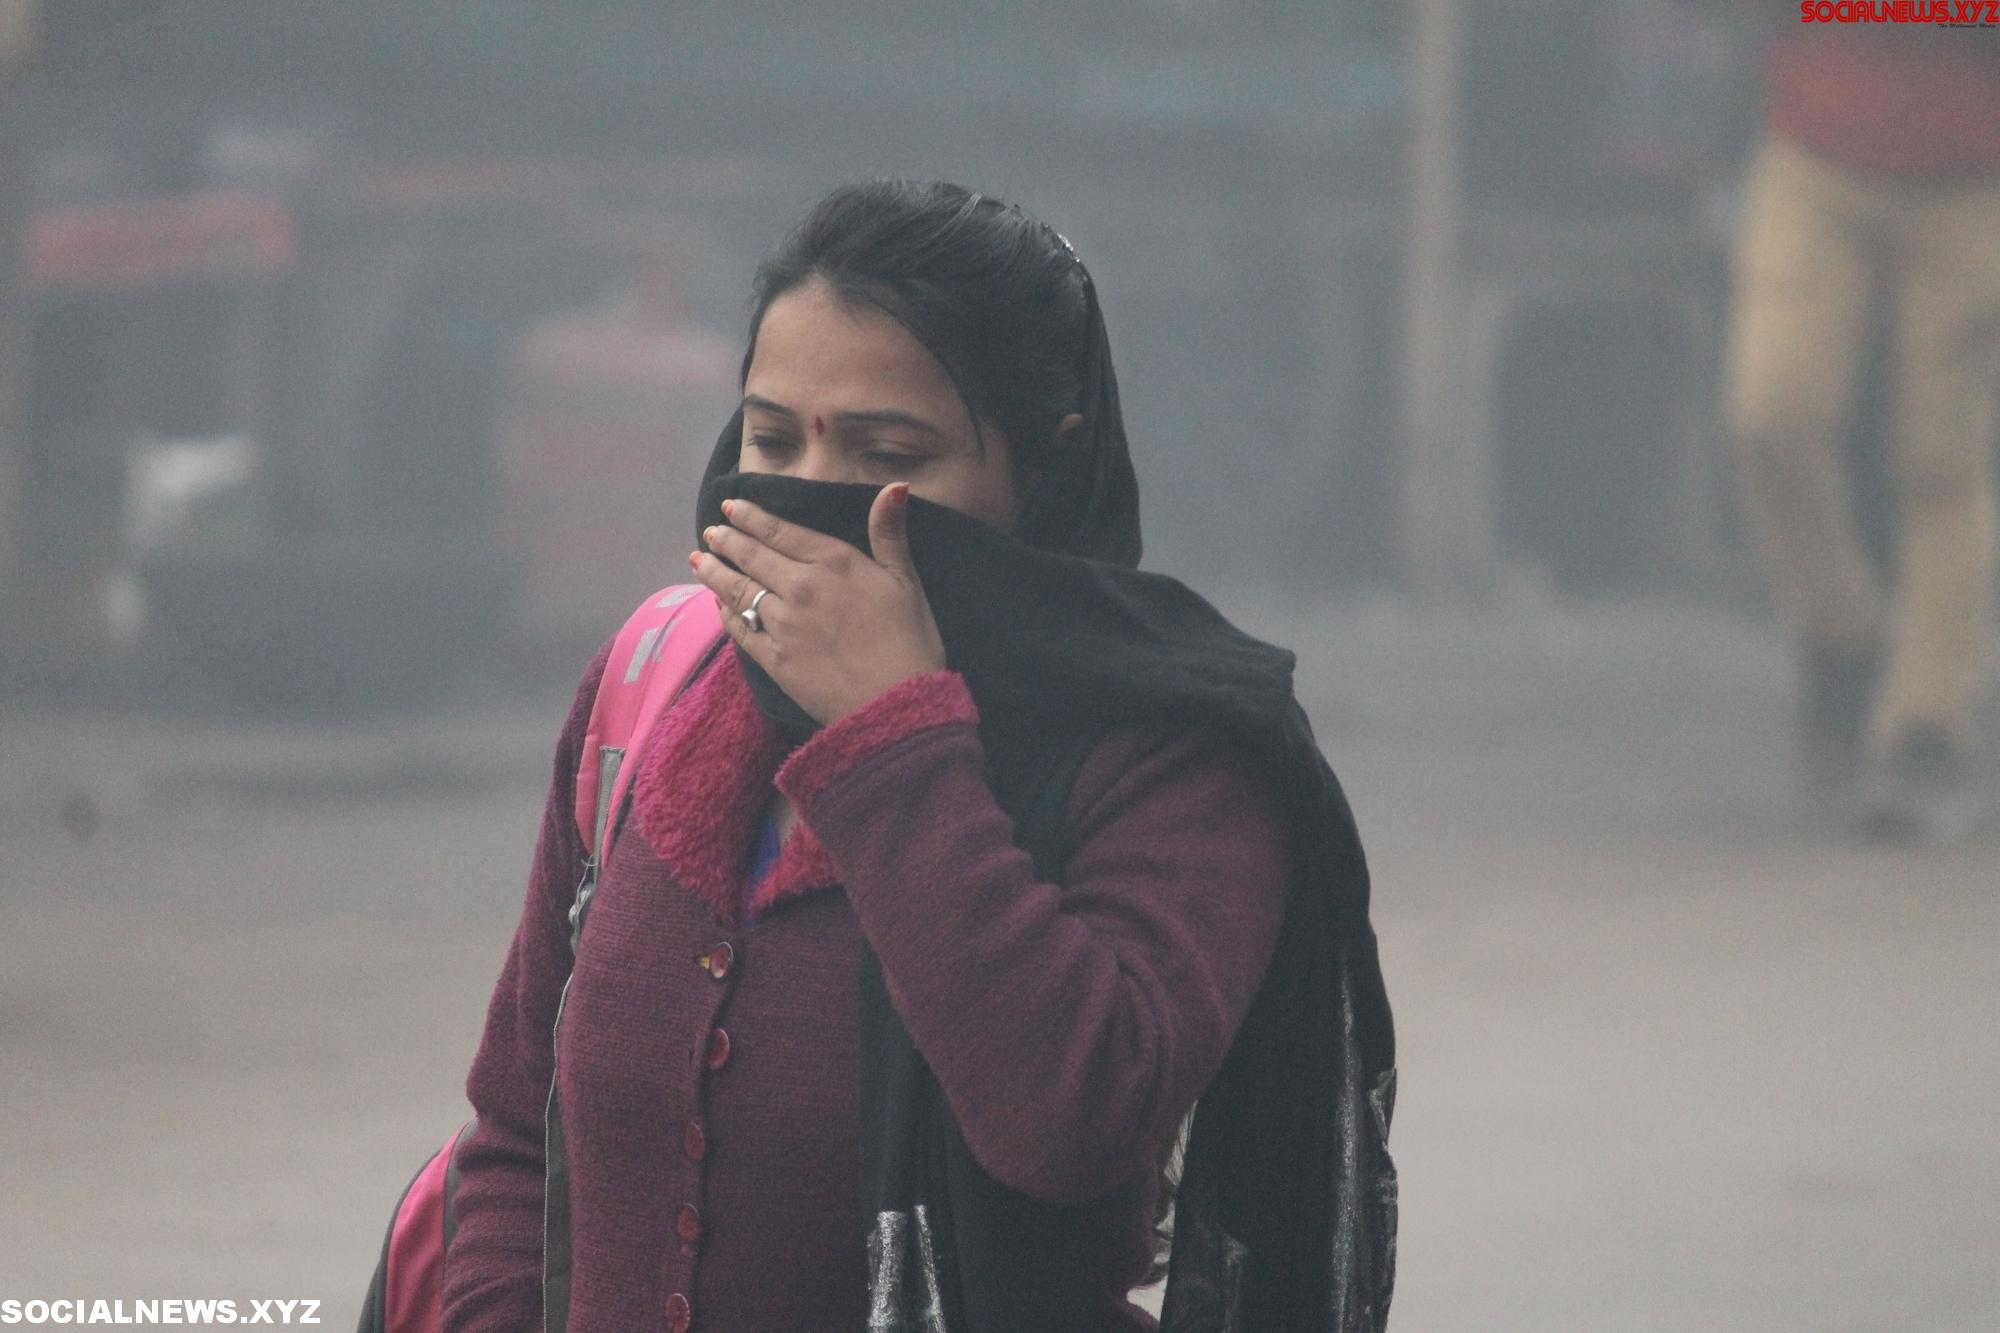 Penalty of Rs 7.25 lakh imposed in single day for flouting pollution norms